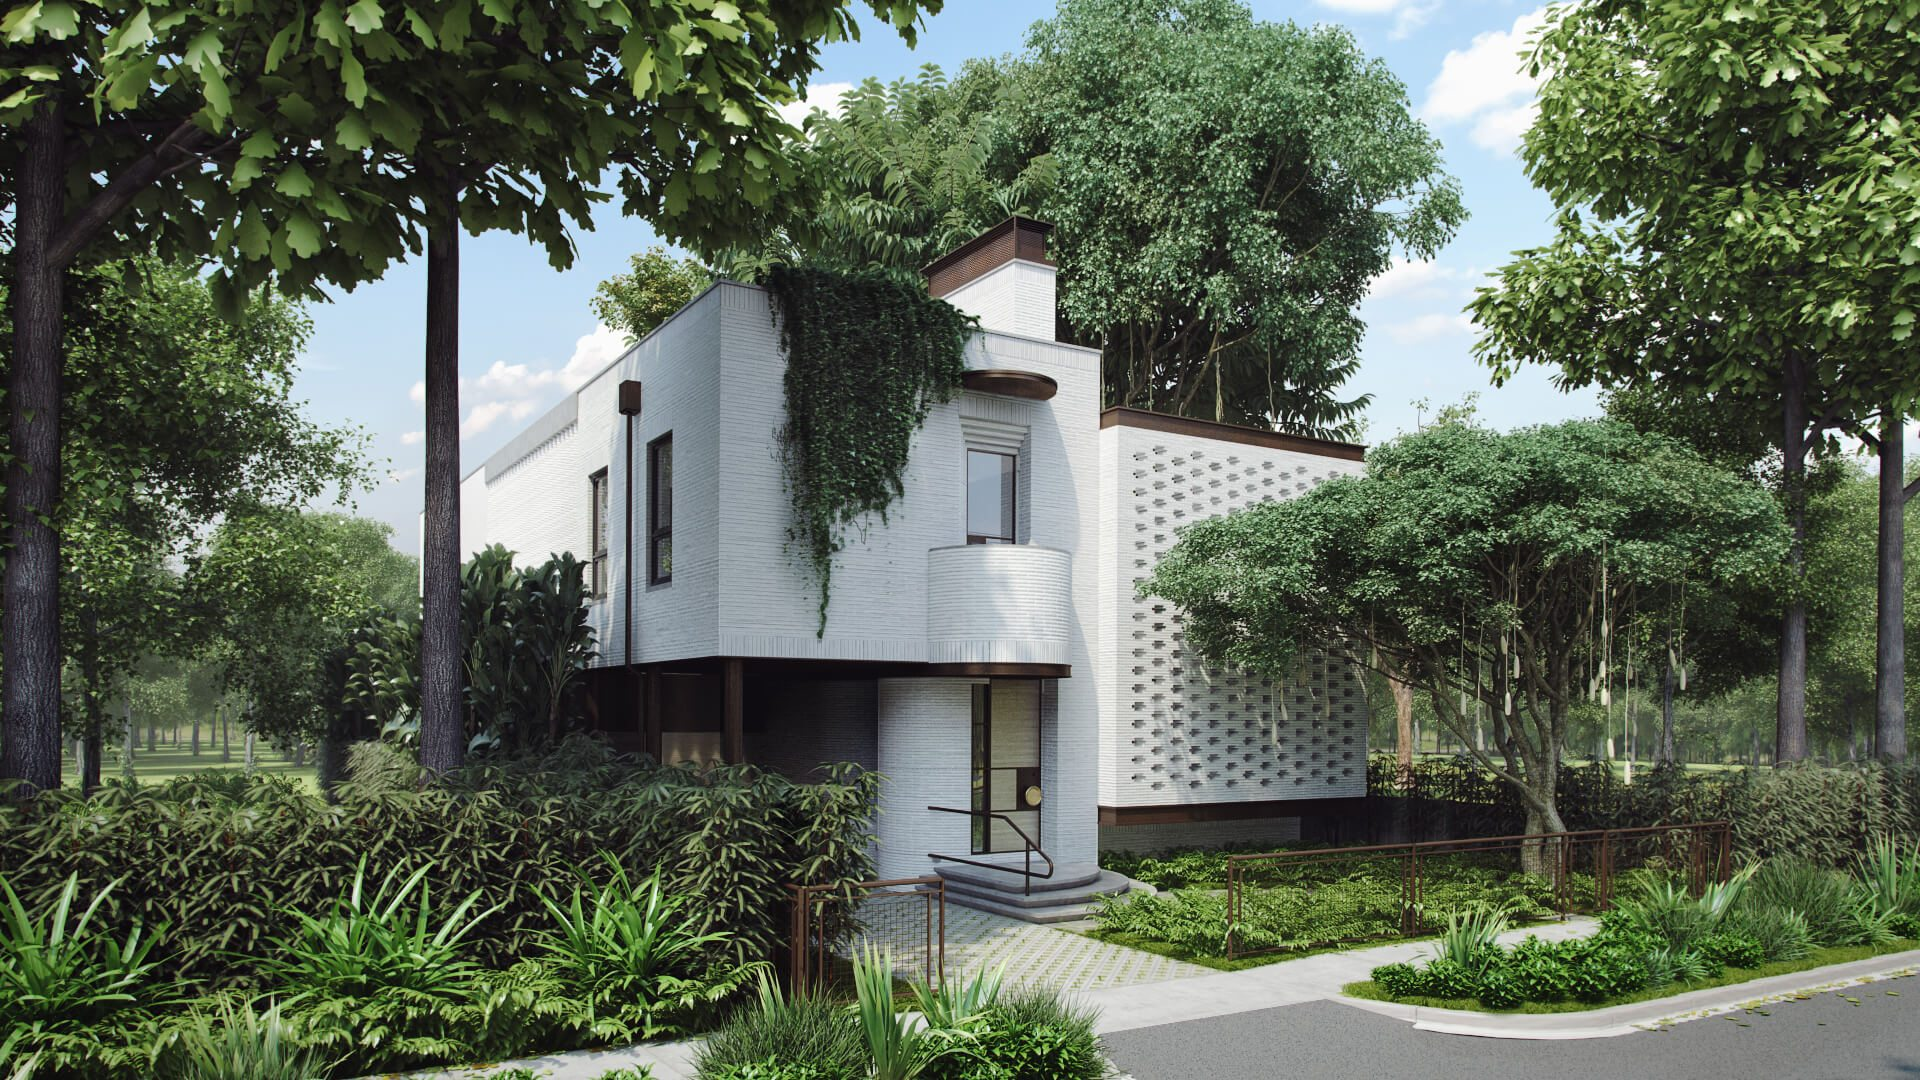 3D Visualization for Environmentally Friendly House Concept